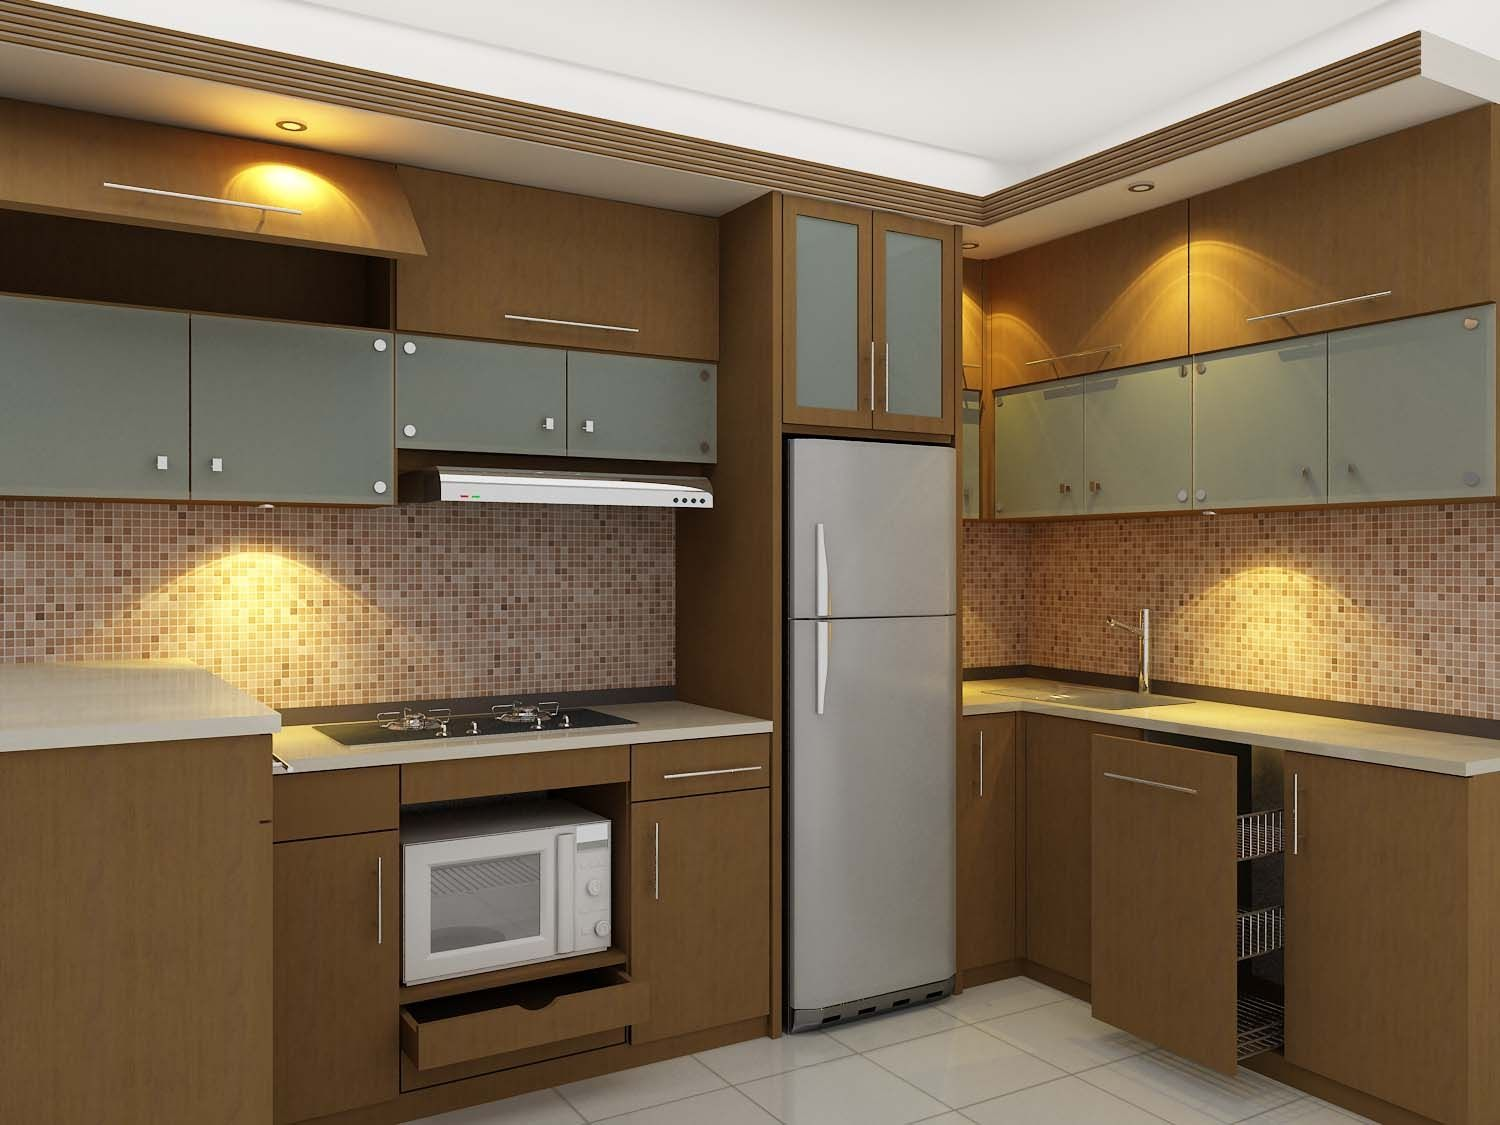 Desain kitchen set minimalis rumah pinterest kitchen for Model kitchen design